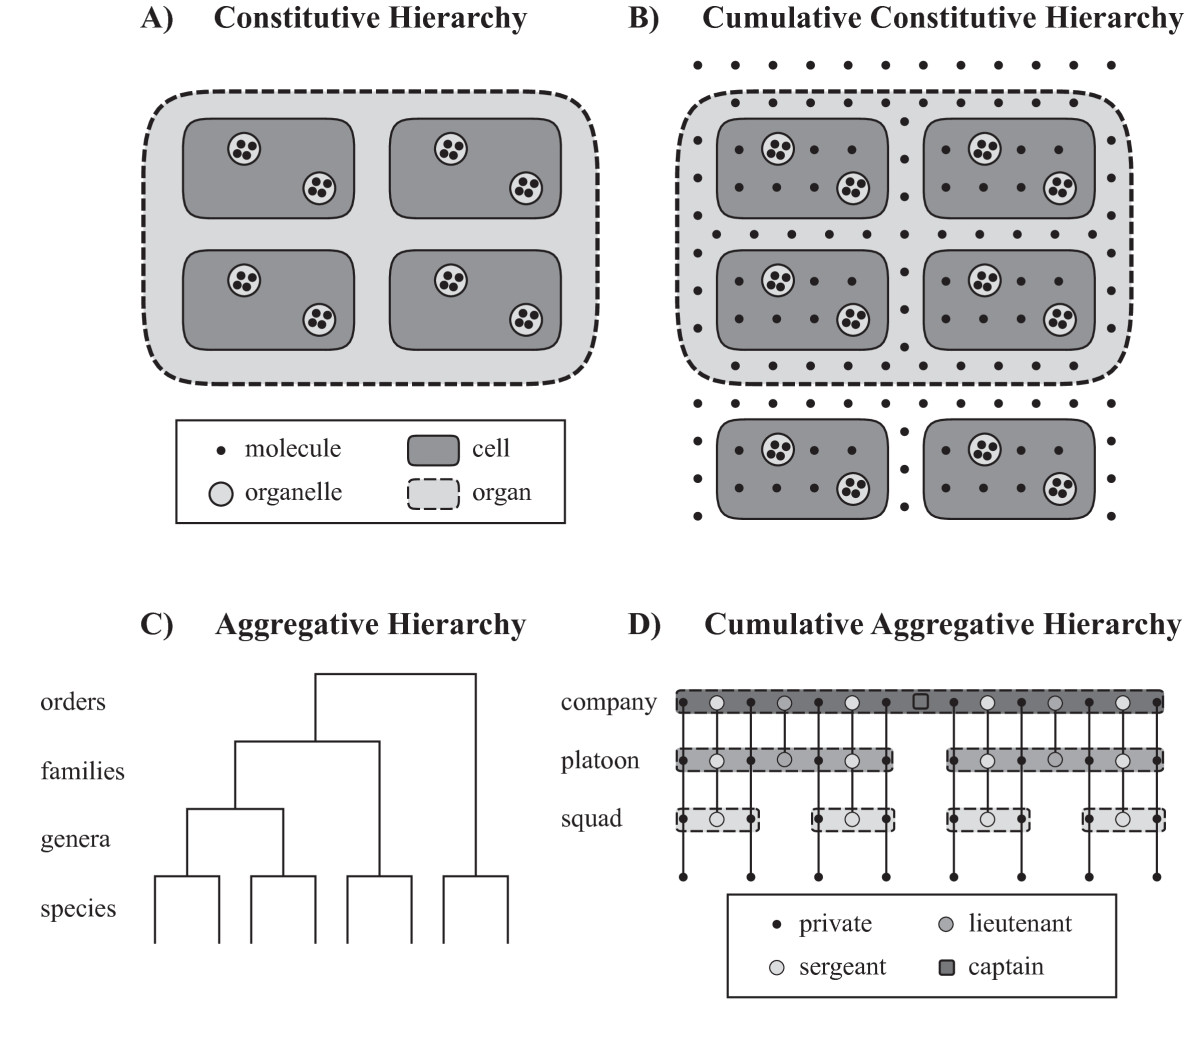 https://static-content.springer.com/image/art%3A10.1186%2F1471-2105-11-289/MediaObjects/12859_2010_Article_3746_Fig1_HTML.jpg